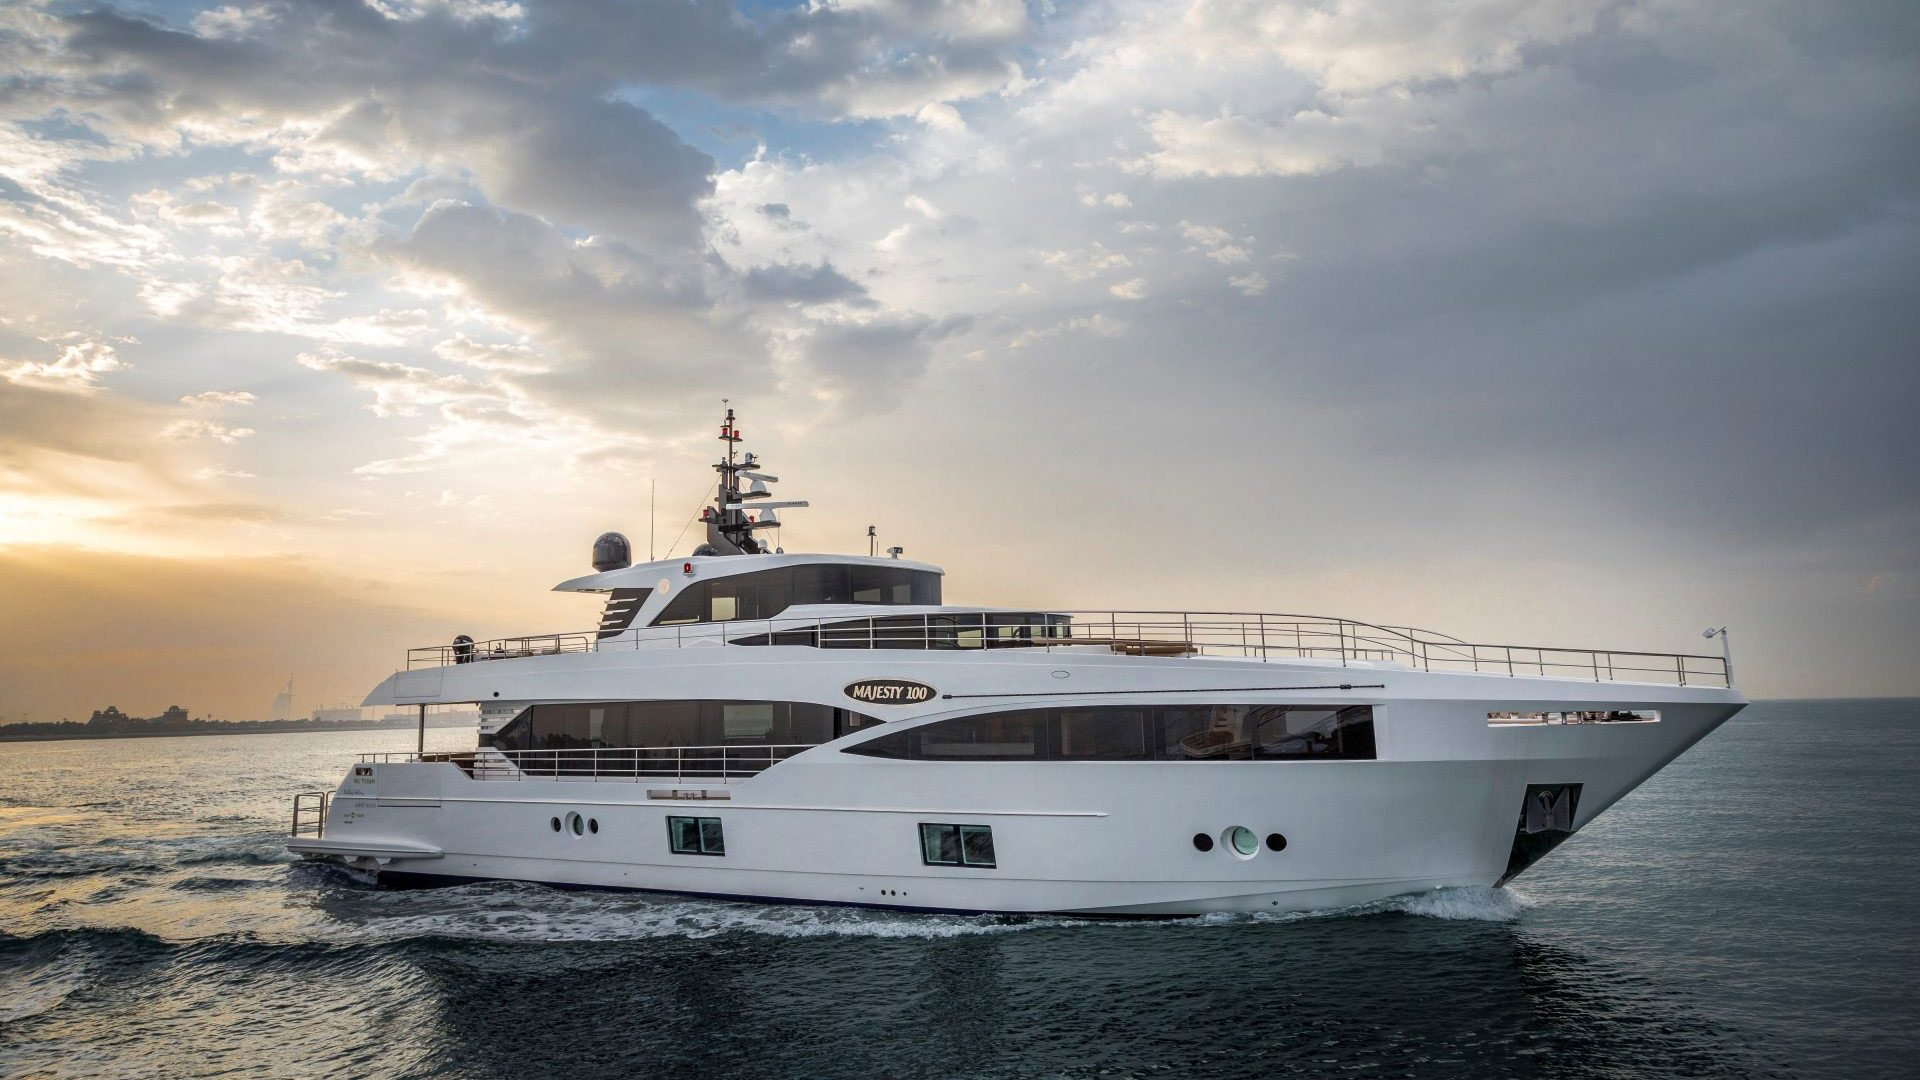 Majesty 100 - Majesty Superyachts by - Drettmann Yachts